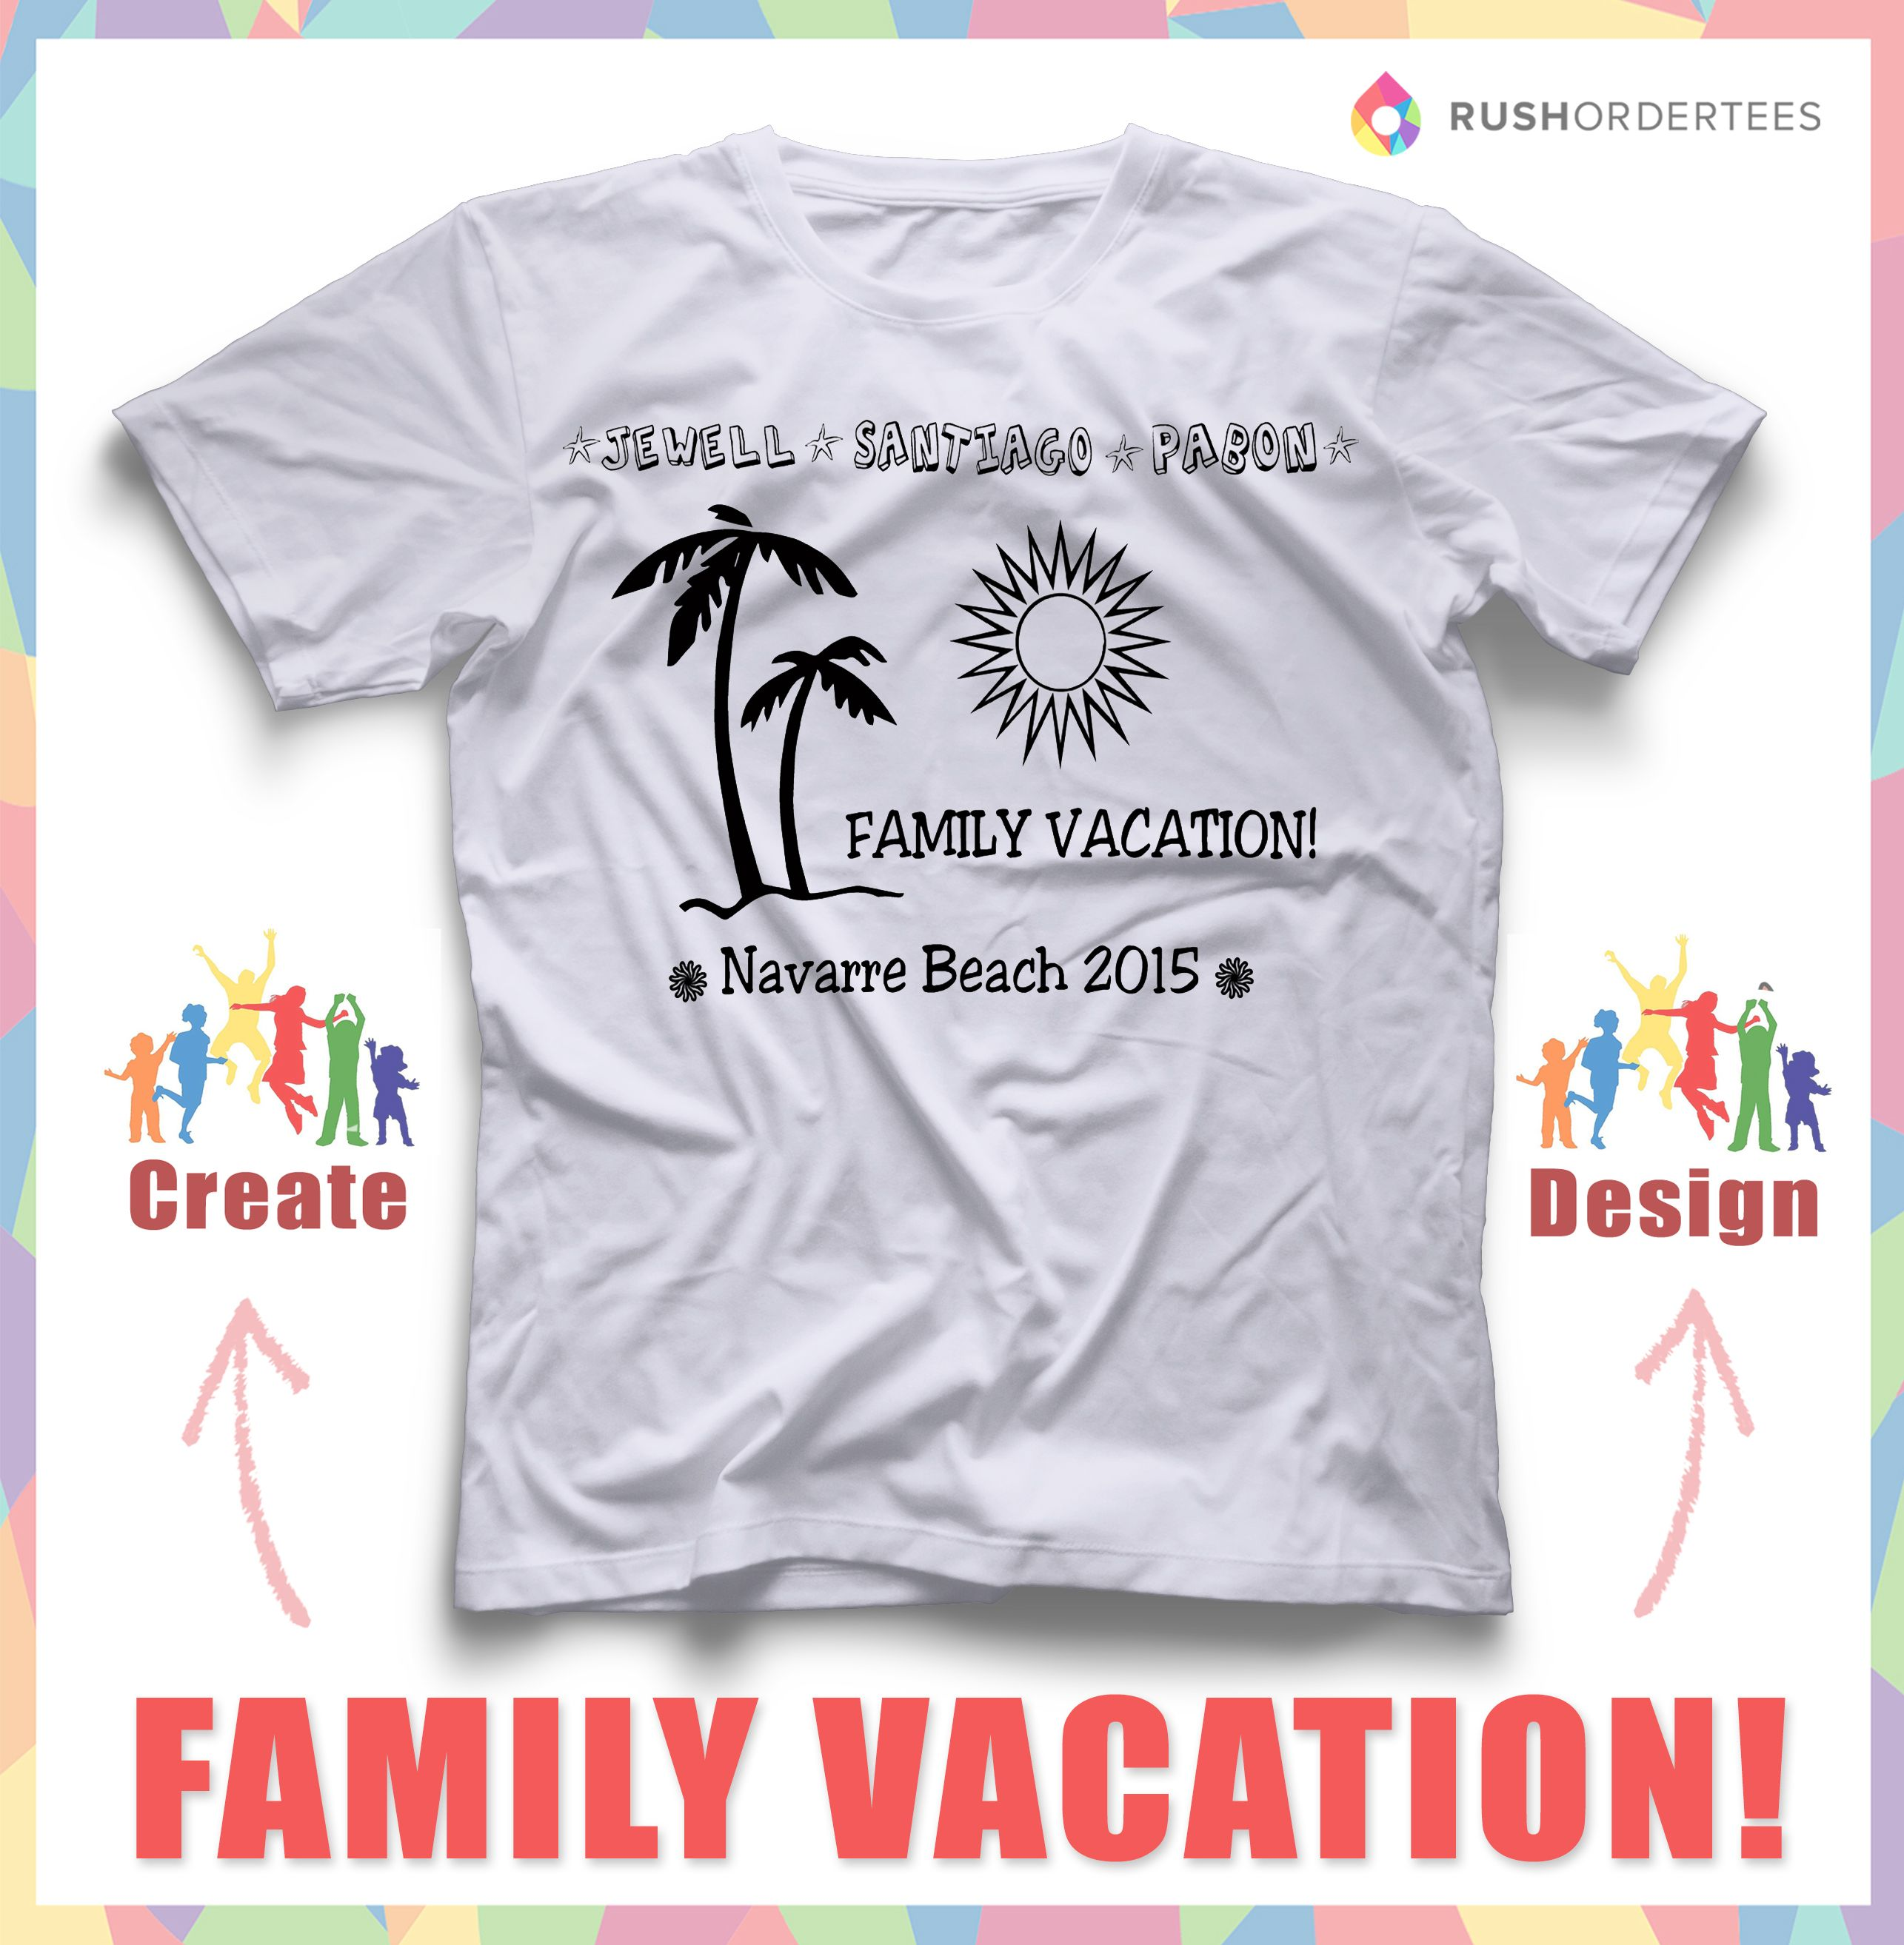 Design your own t-shirt cafepress